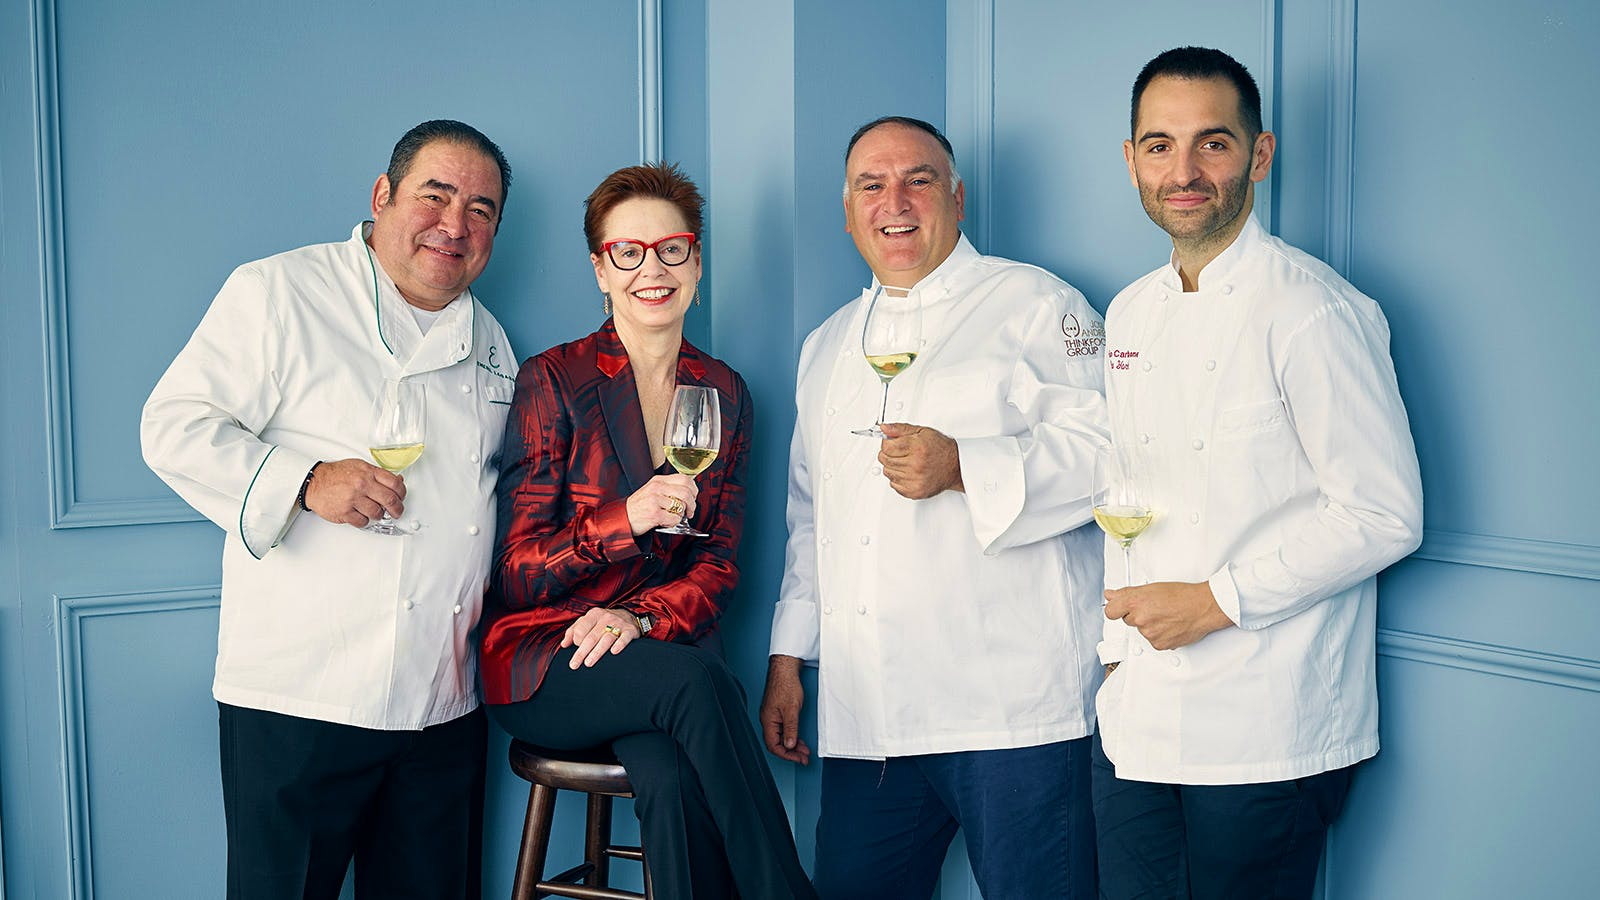 Chefs' Challenge: The Gloves Come Off in Pairing Throwdown